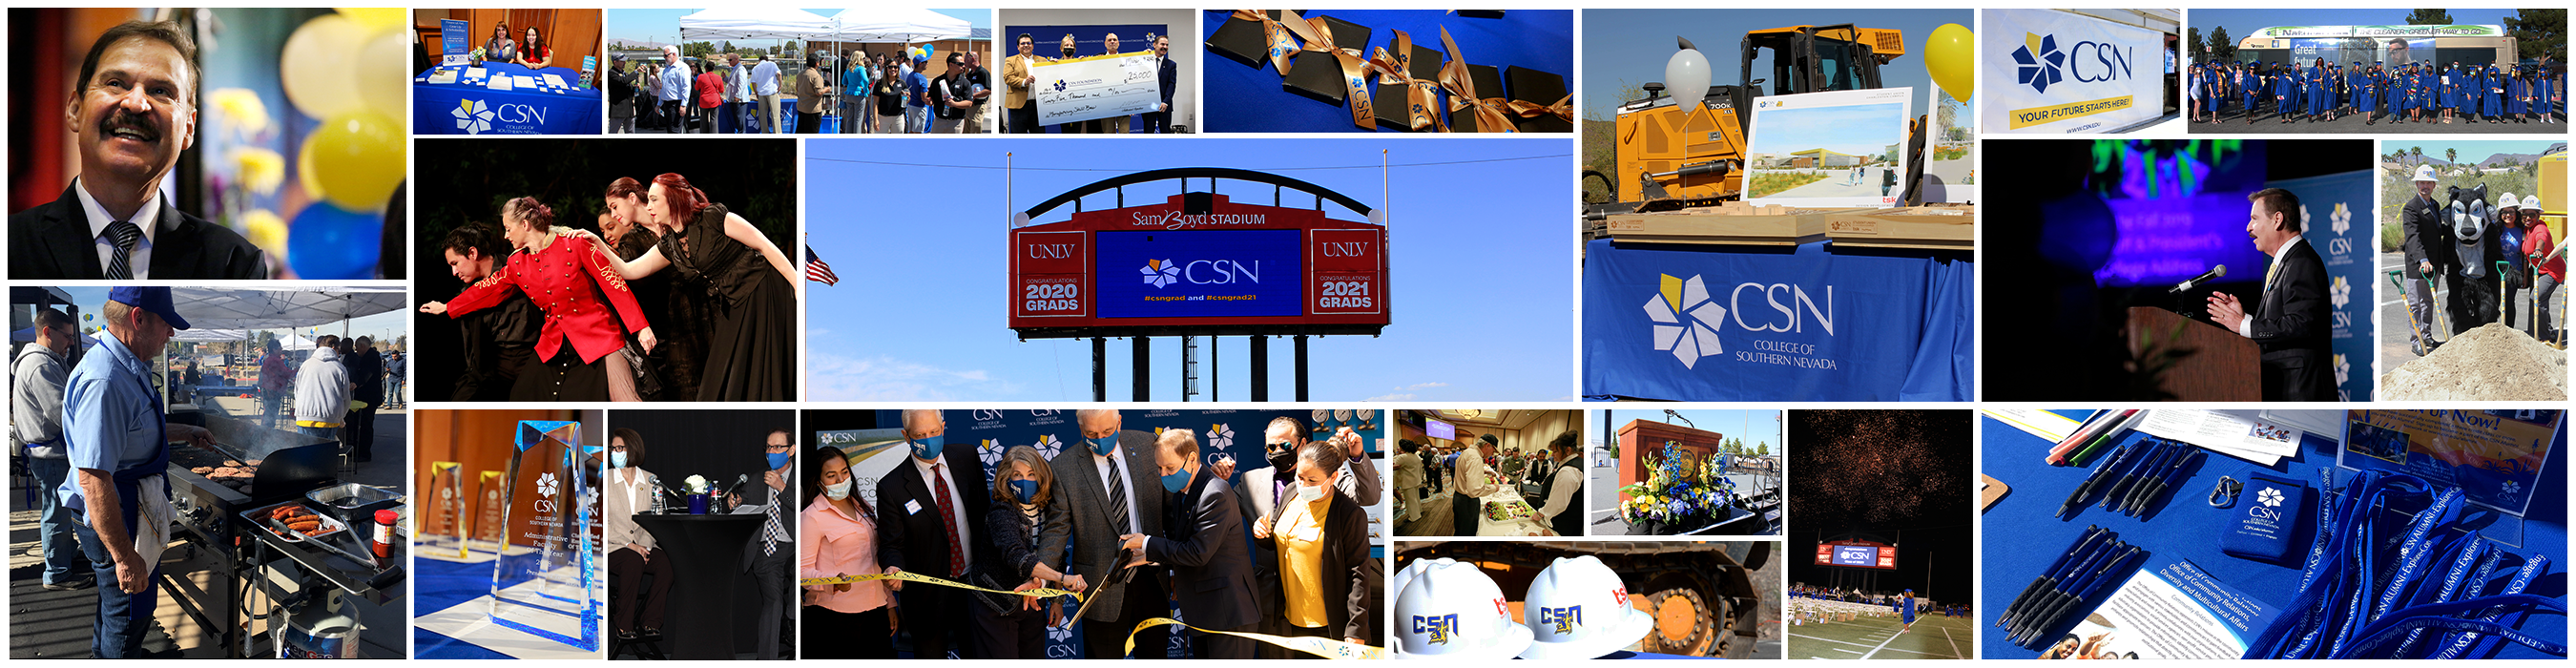 picture collage of past, CSN events